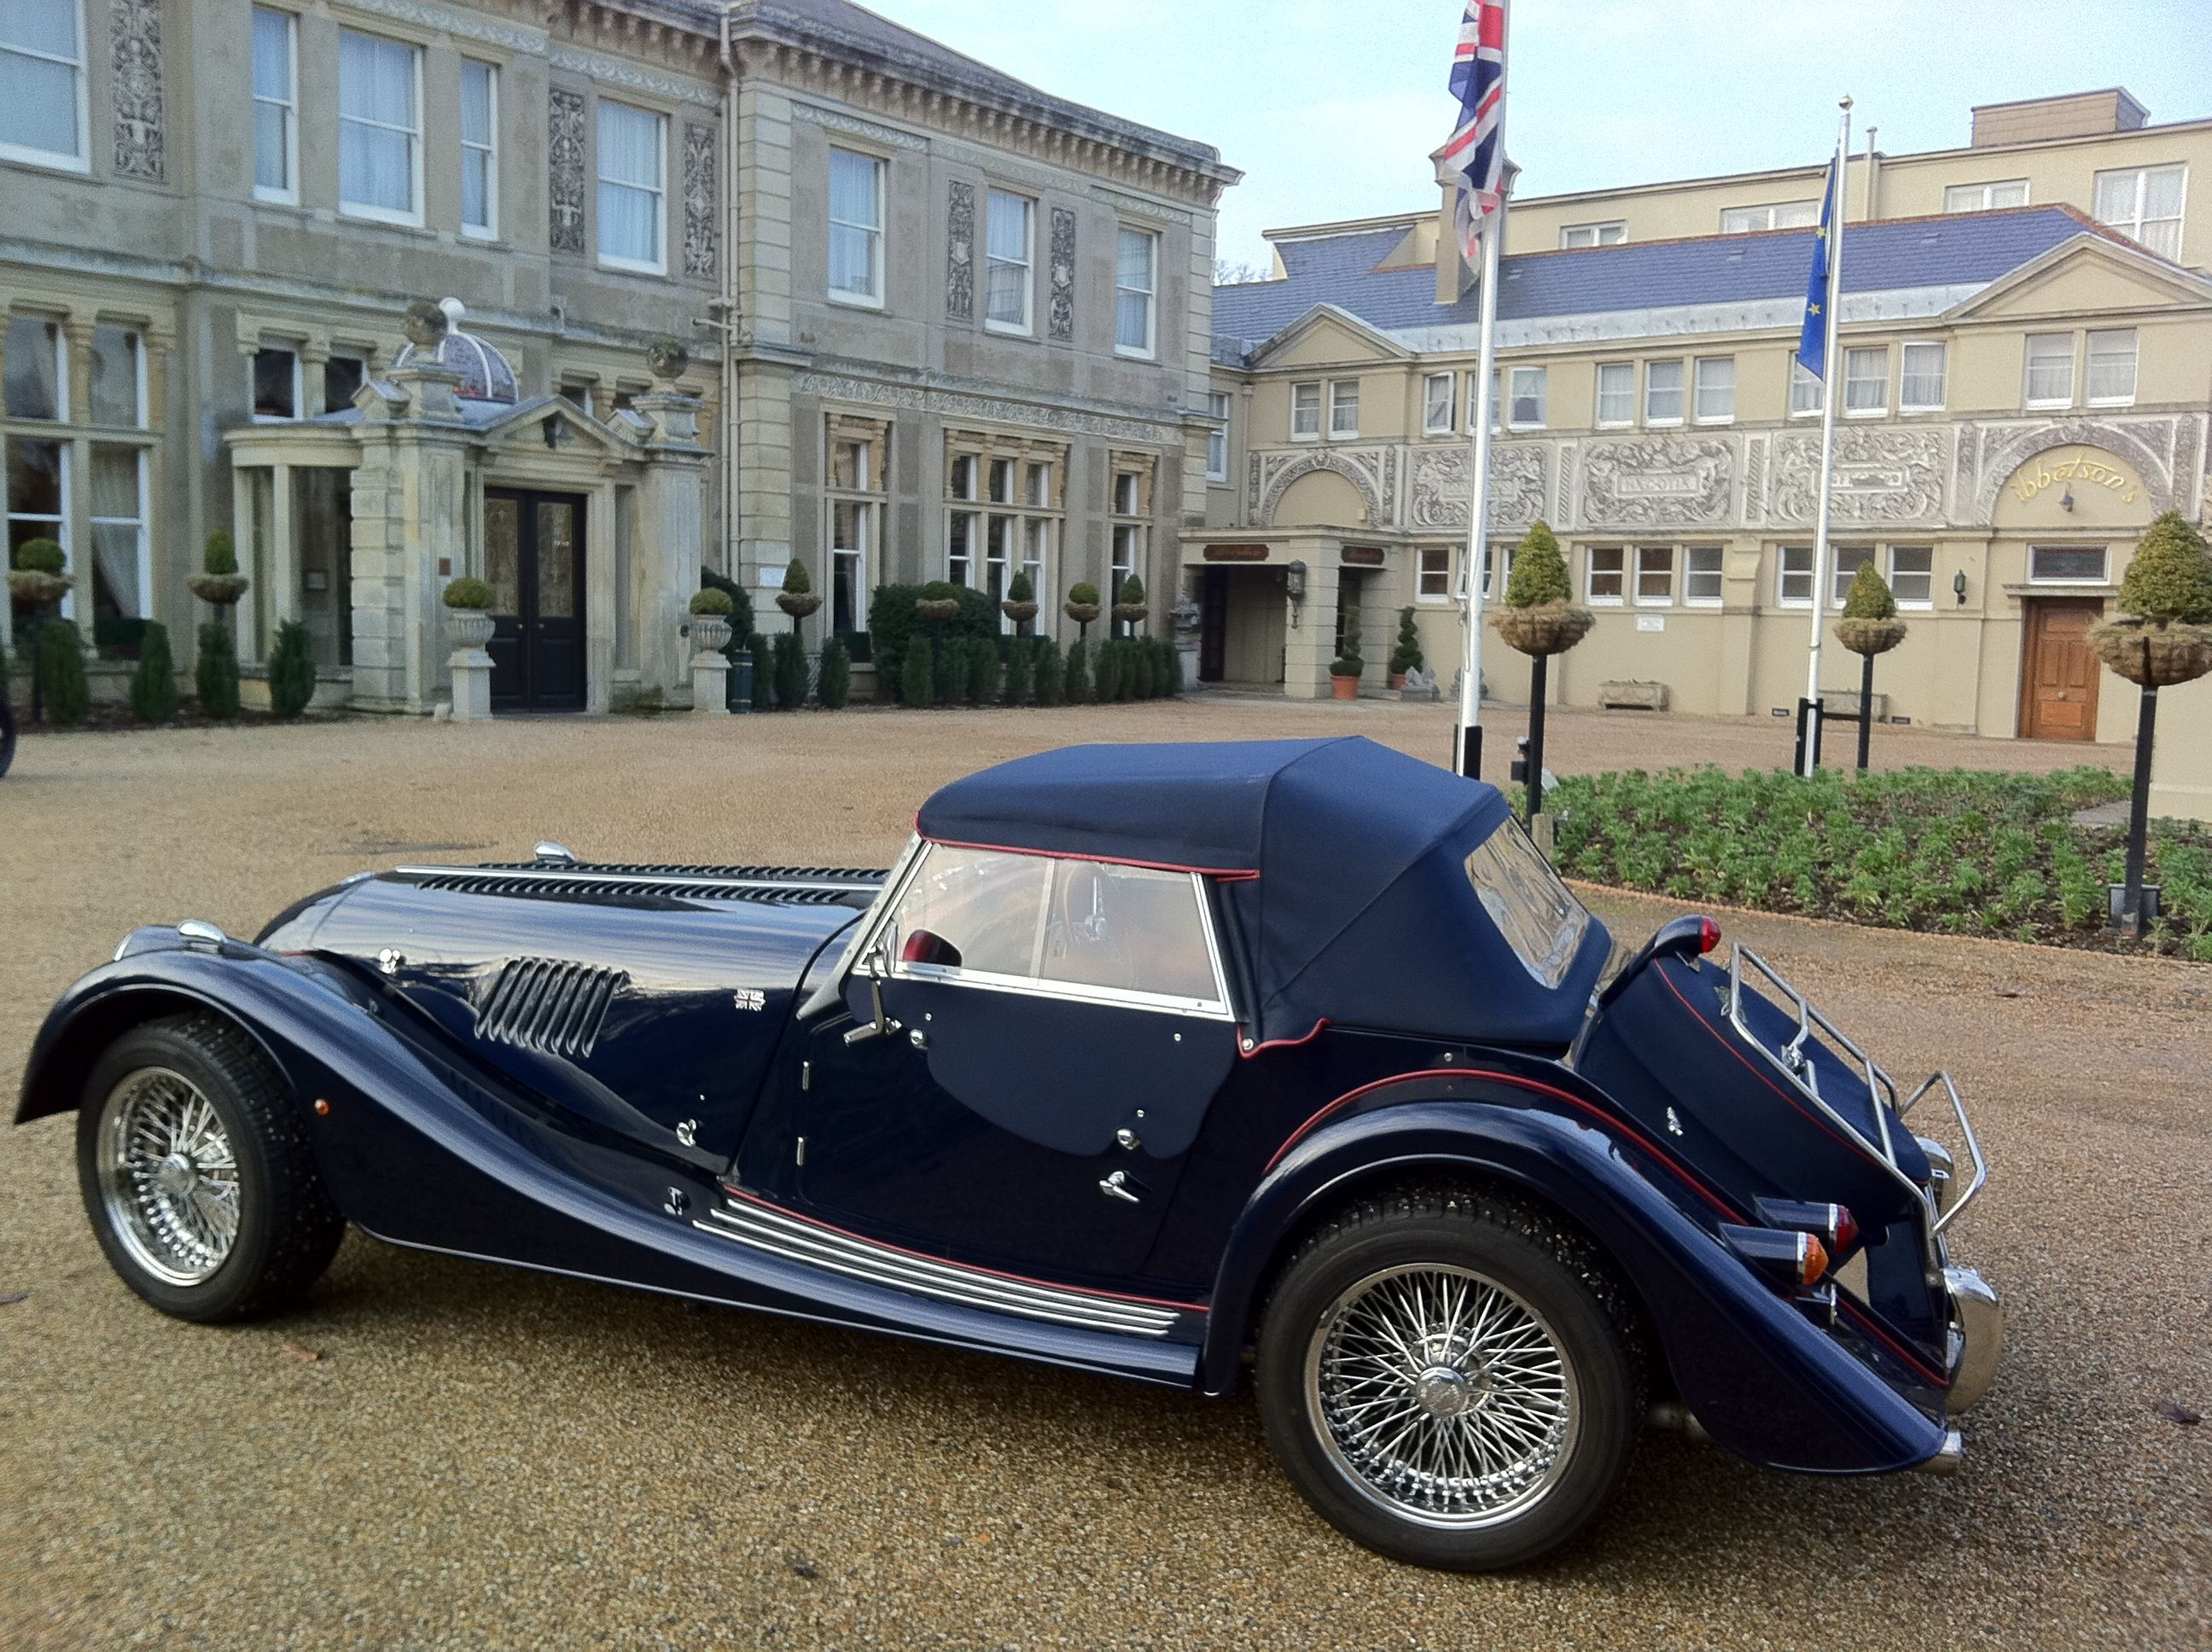 A beautiful Morgan car in front of Down Hall Country House Hotel